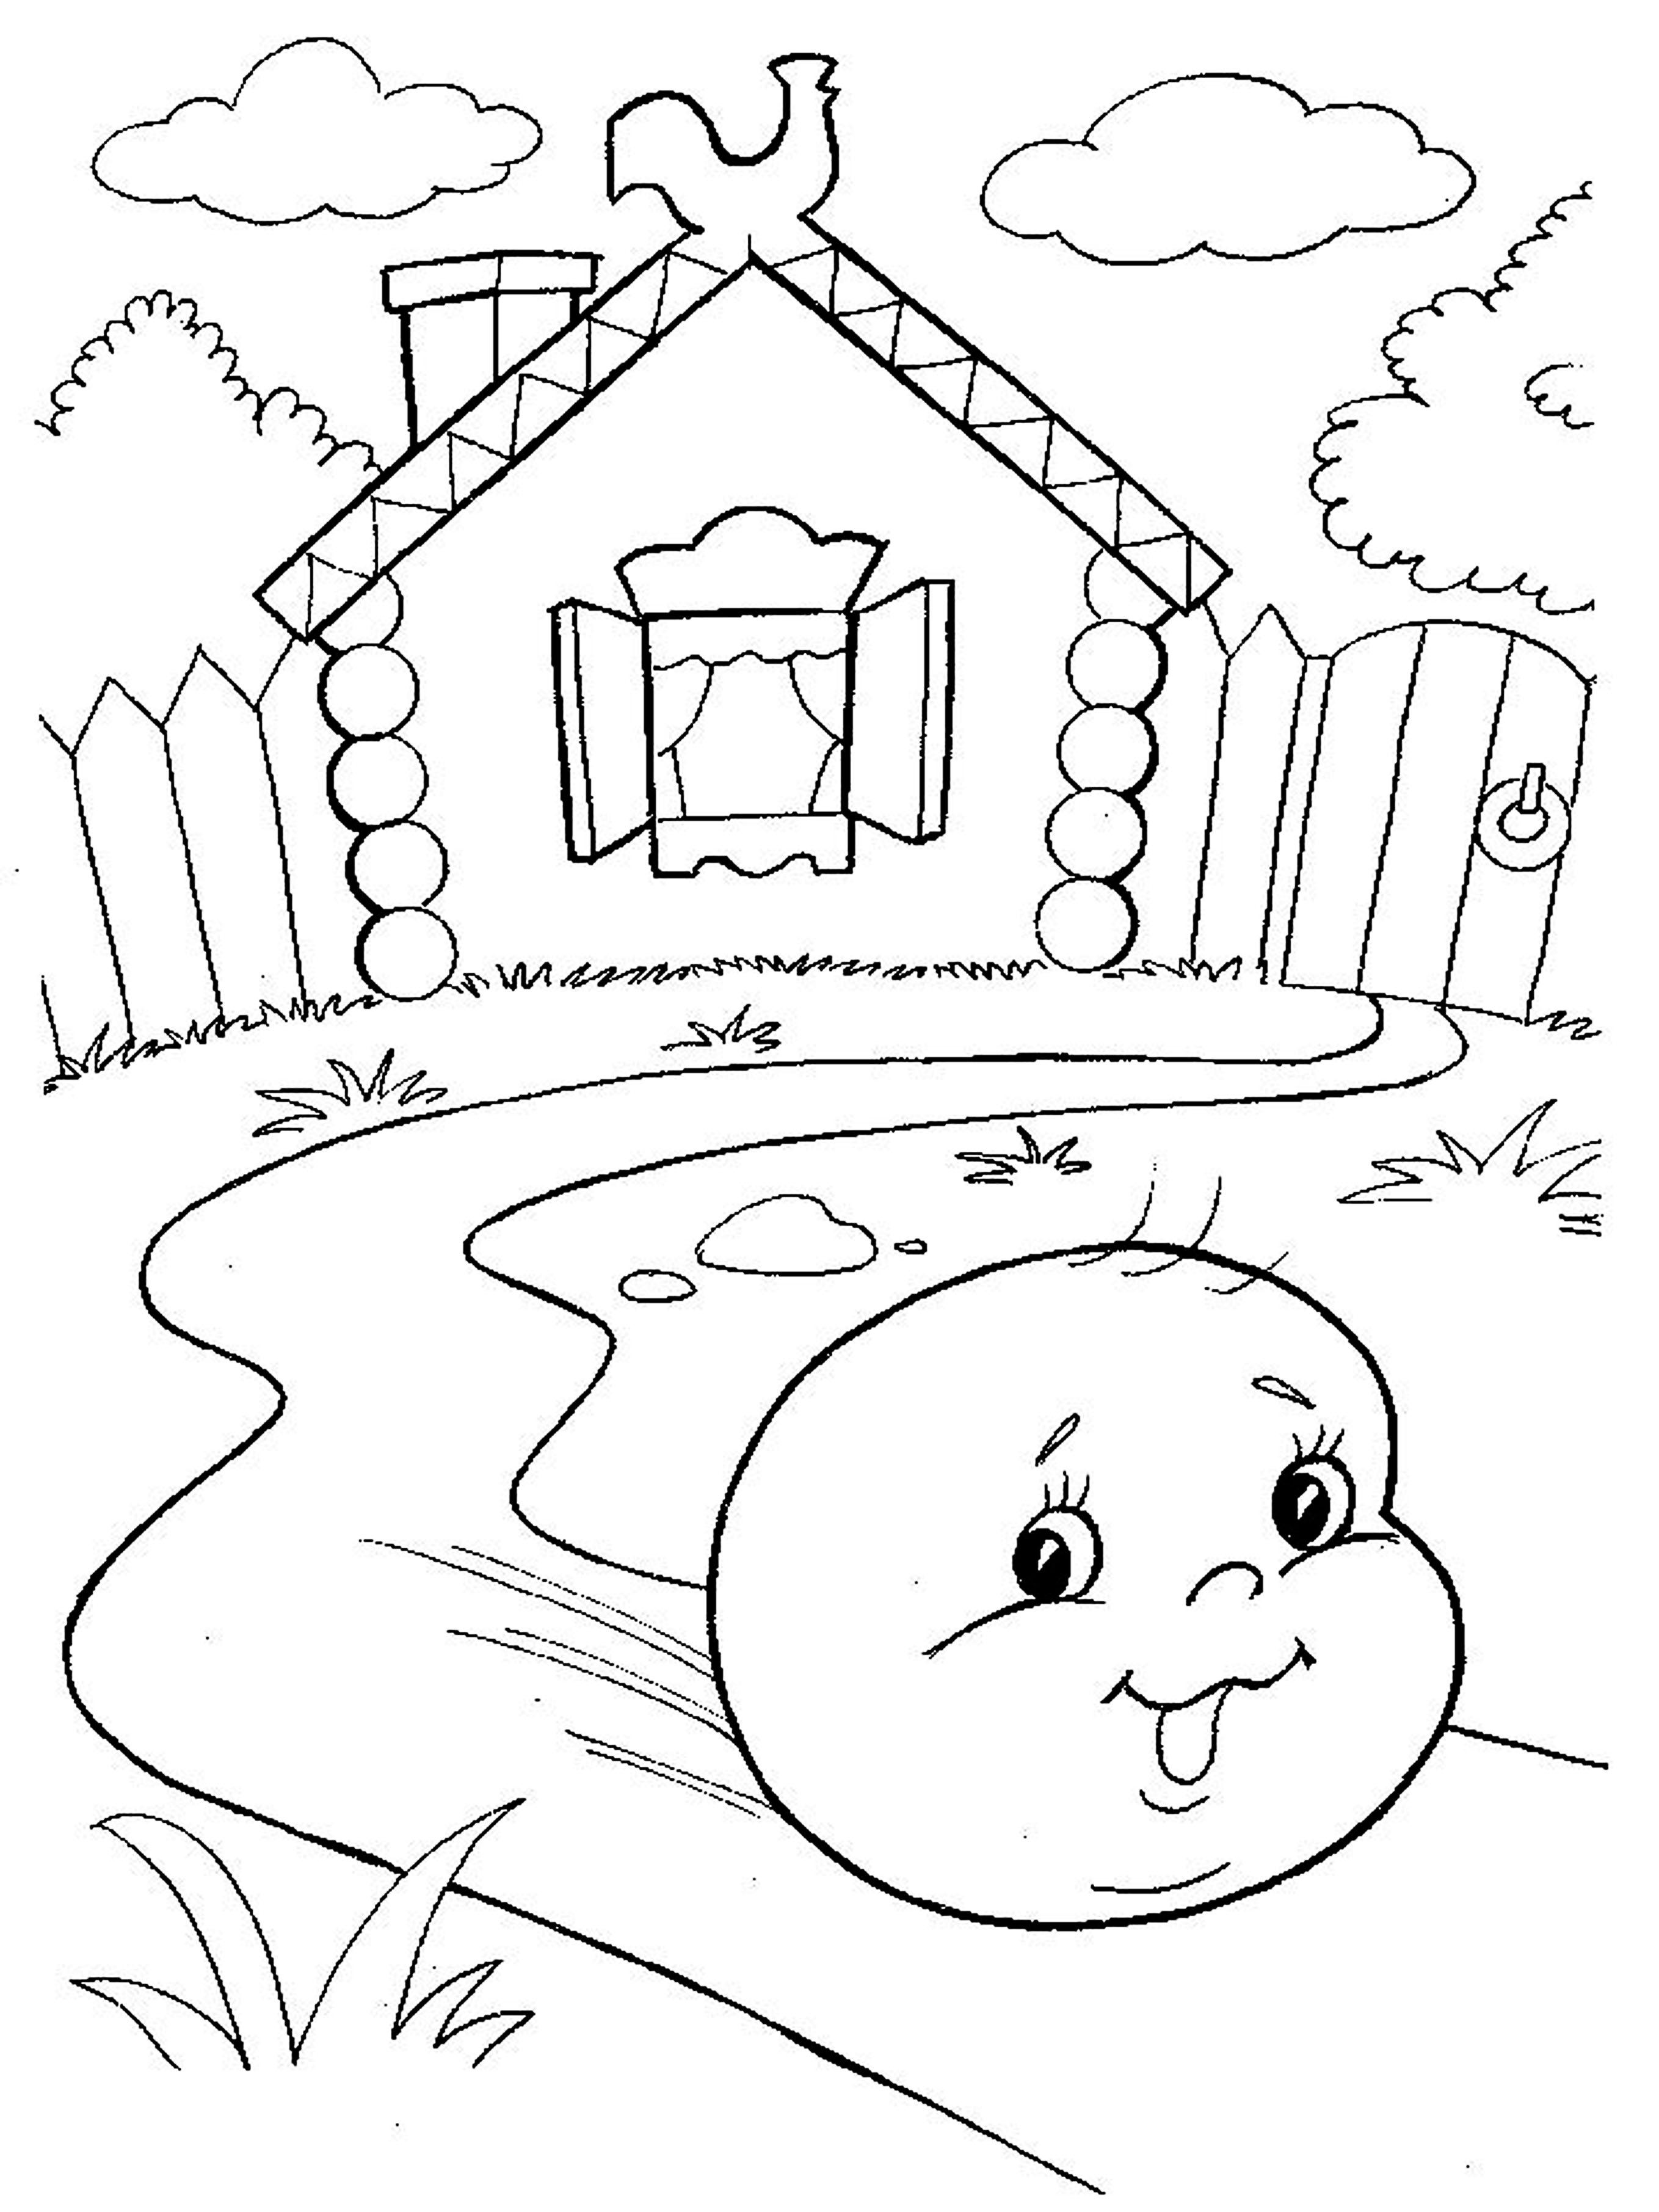 Coloring coloring pages to the tale bun He said, and jumped down from the window, window, window, window and bun